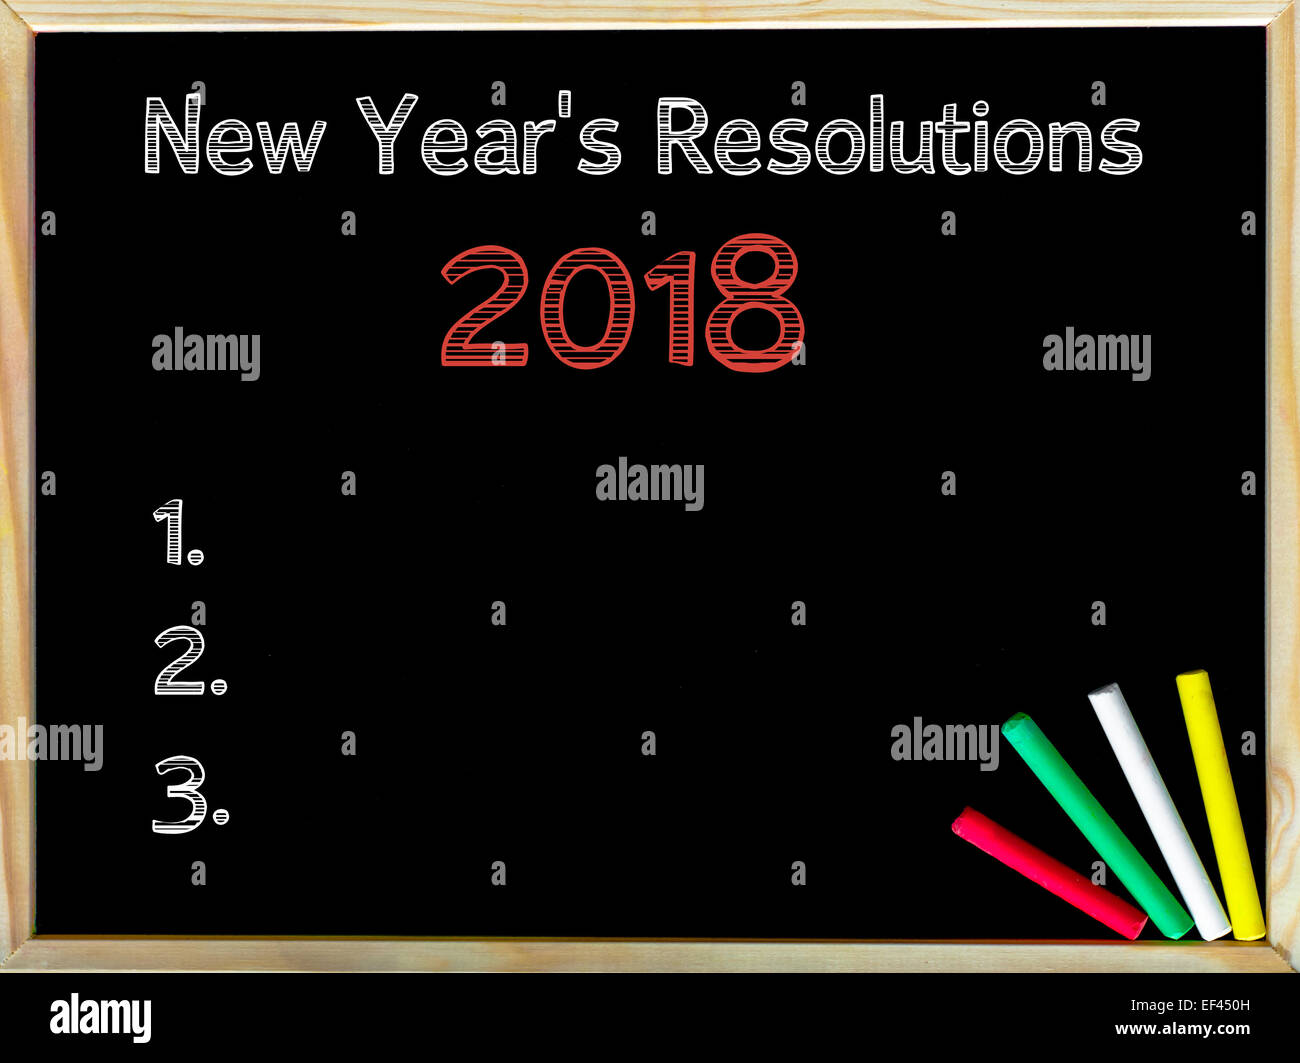 New Years Resolutions Vintage Chalk Text On Blackboard Colored Stock Photo Royalty Free